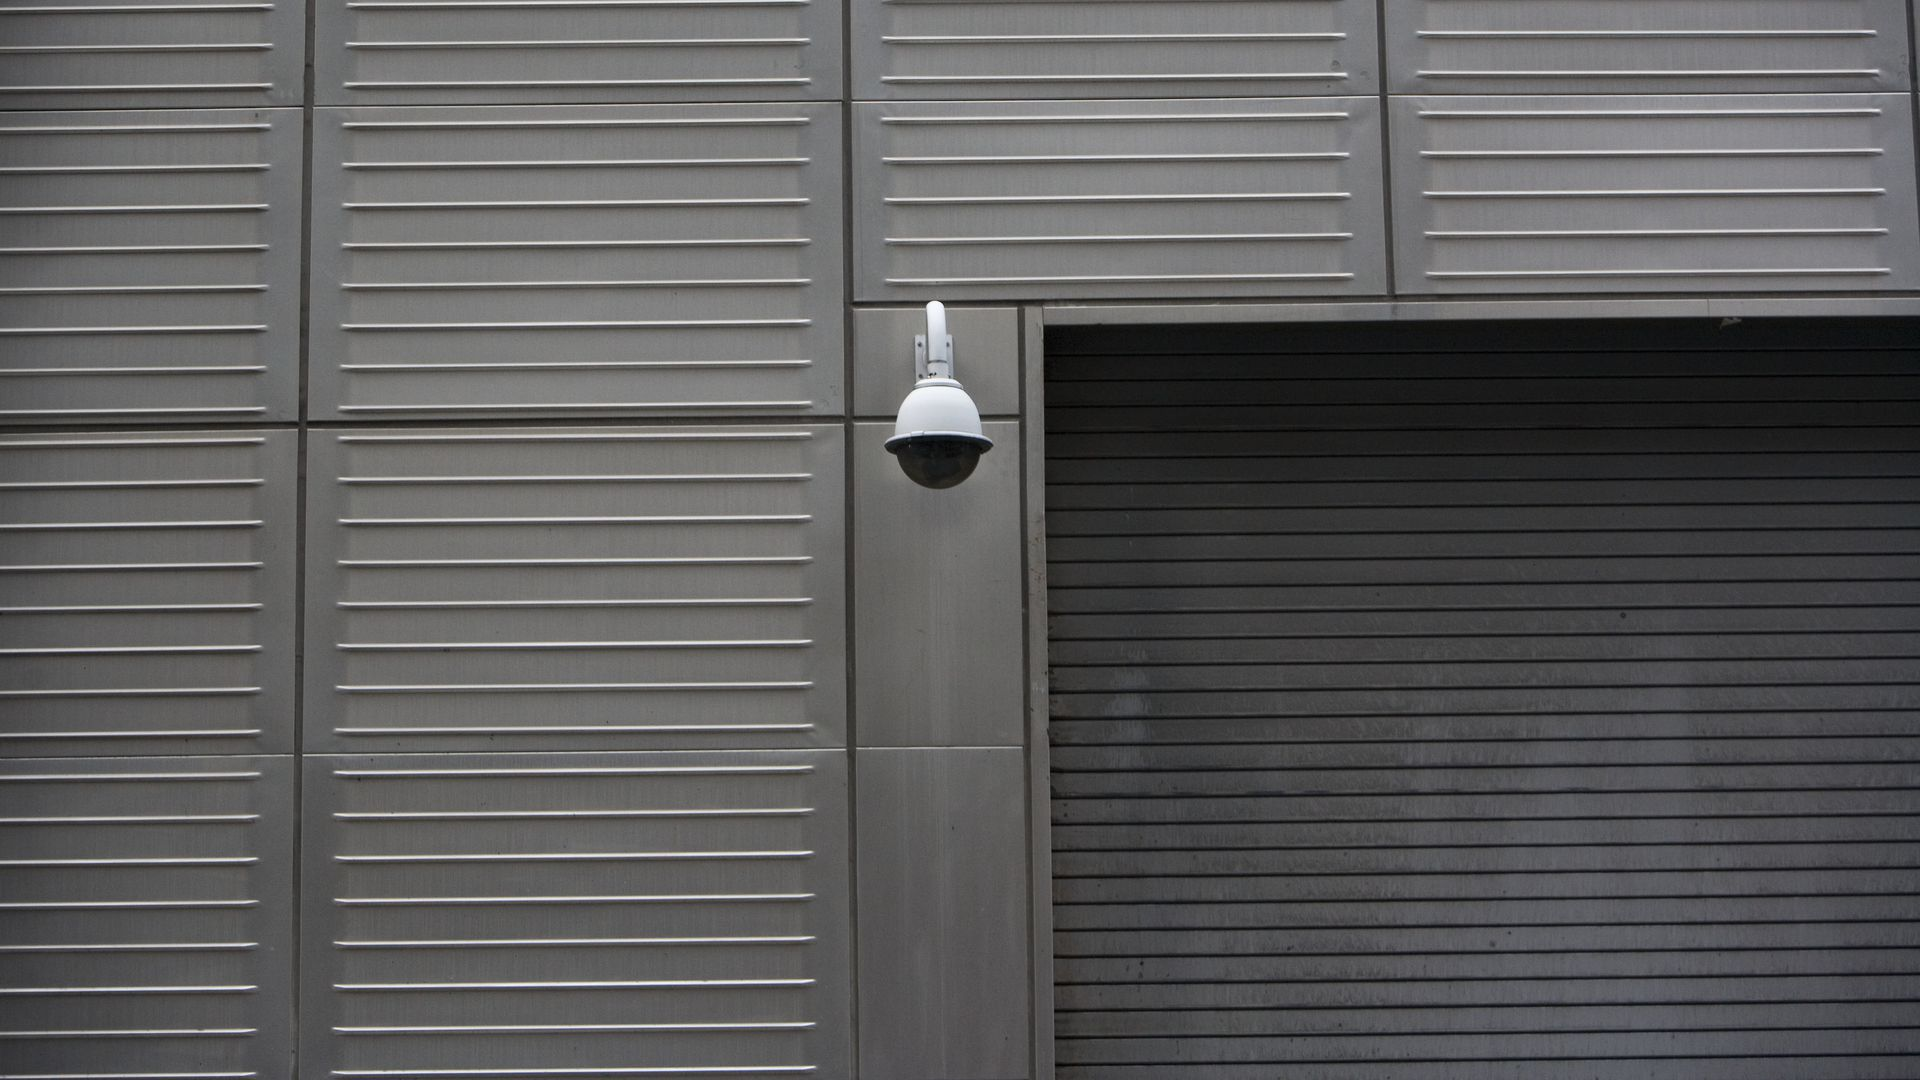 Photo of a surveillance camera on a wall